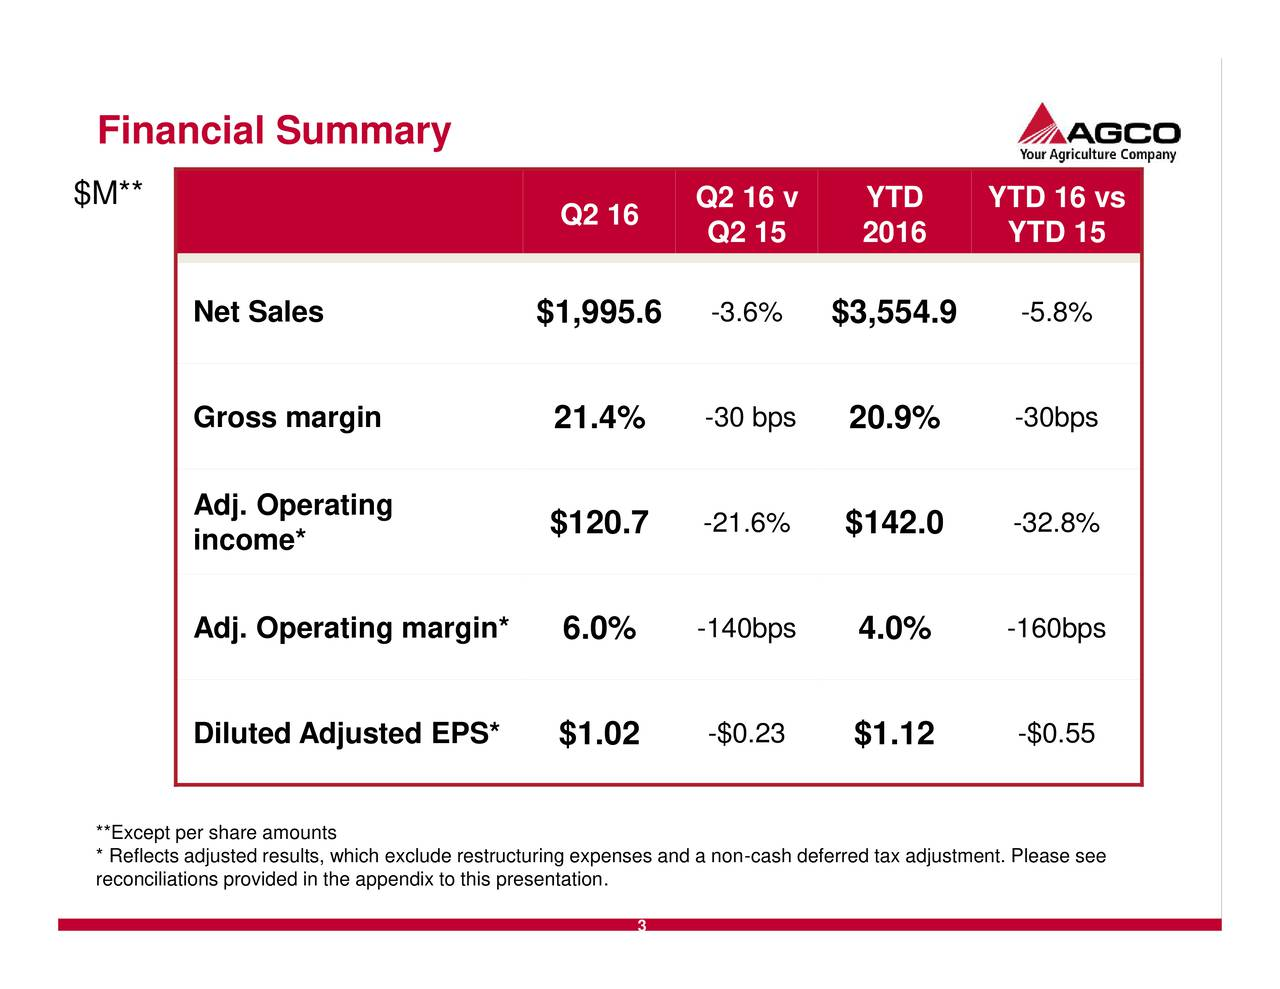 $M** Q2 16 v YTD YTD 16 vs Q2 16 Q2 15 2016 YTD 15 Net Sales $1,995.6 -3.6% $3,554.9 -5.8% Gross margin 21.4% -30 bps 20.9% -30bps Adj. Operating $120.7 -21.6% $142.0 -32.8% income* Adj. Operating margin* 6.0% -140bps 4.0% -160bps Diluted Adjusted EPS* $1.02 -$0.23 $1.12 -$0.55 **Except per share amounts reconciliations provided in the appendix to this presentation.ses and a non-cash deferred tax adjustment. Please see 3